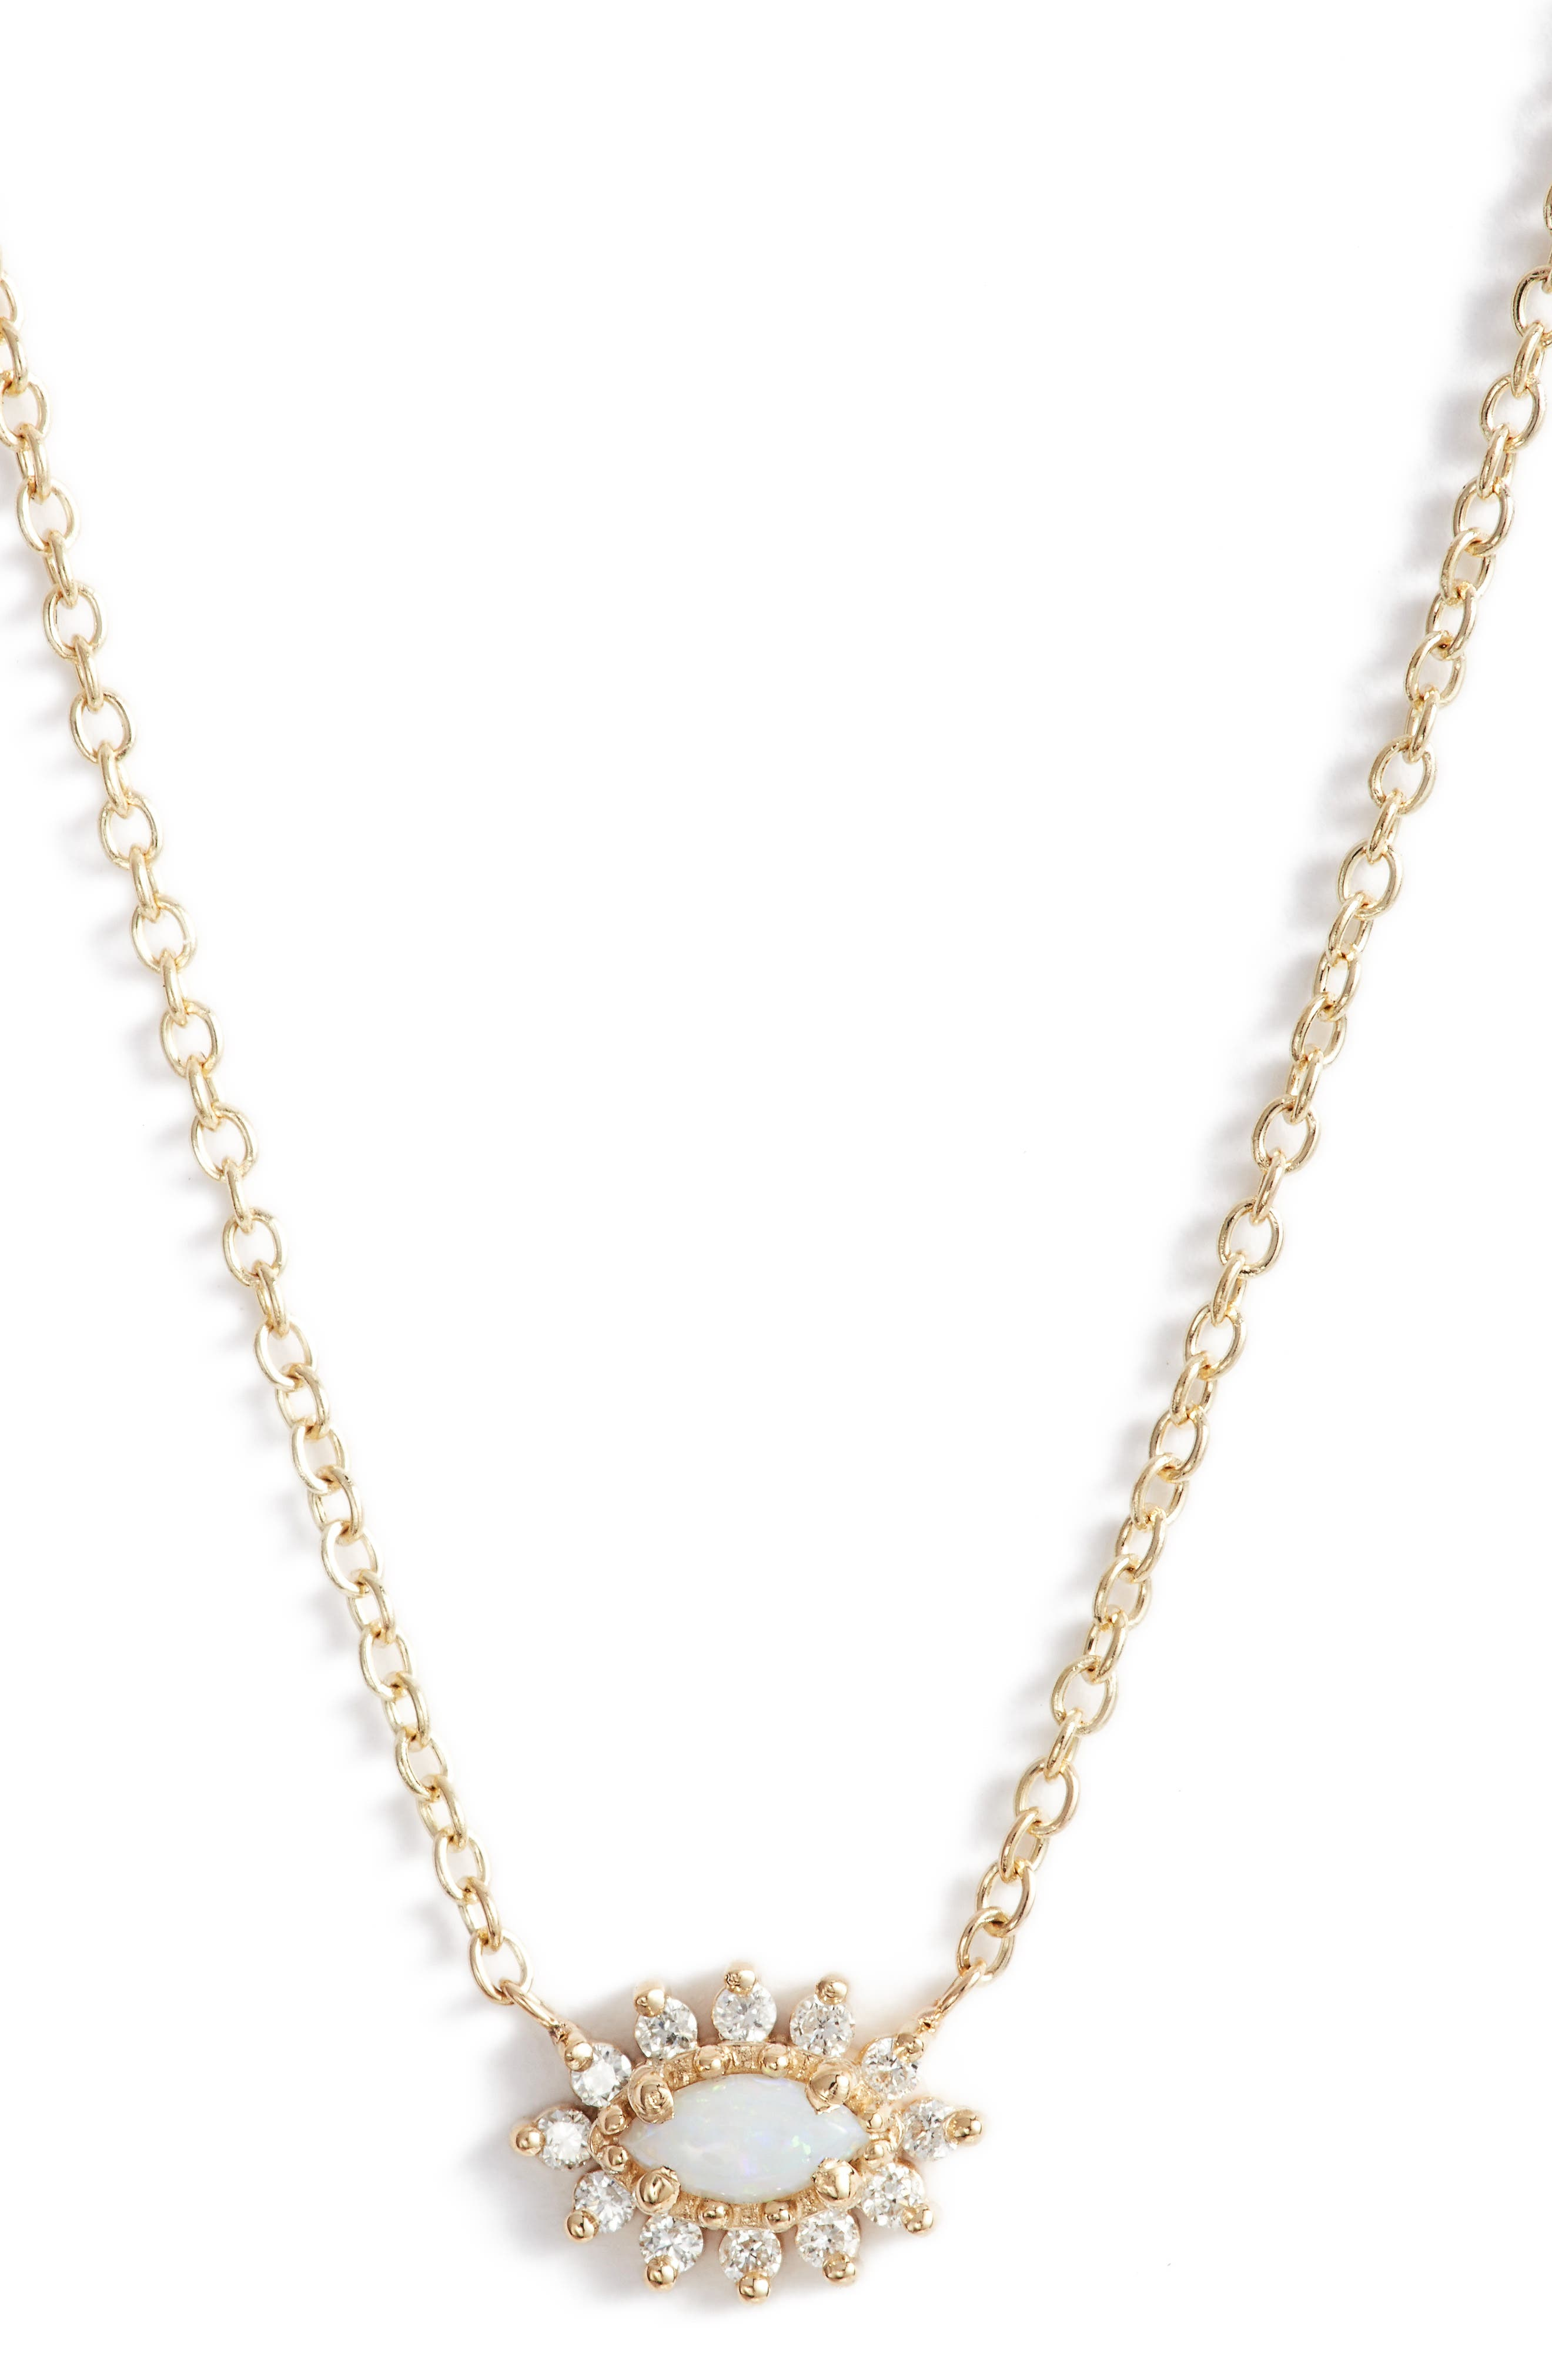 Diamond & Opal Cluster Pendant Necklace,                         Main,                         color, Yellow Gold/ Opal